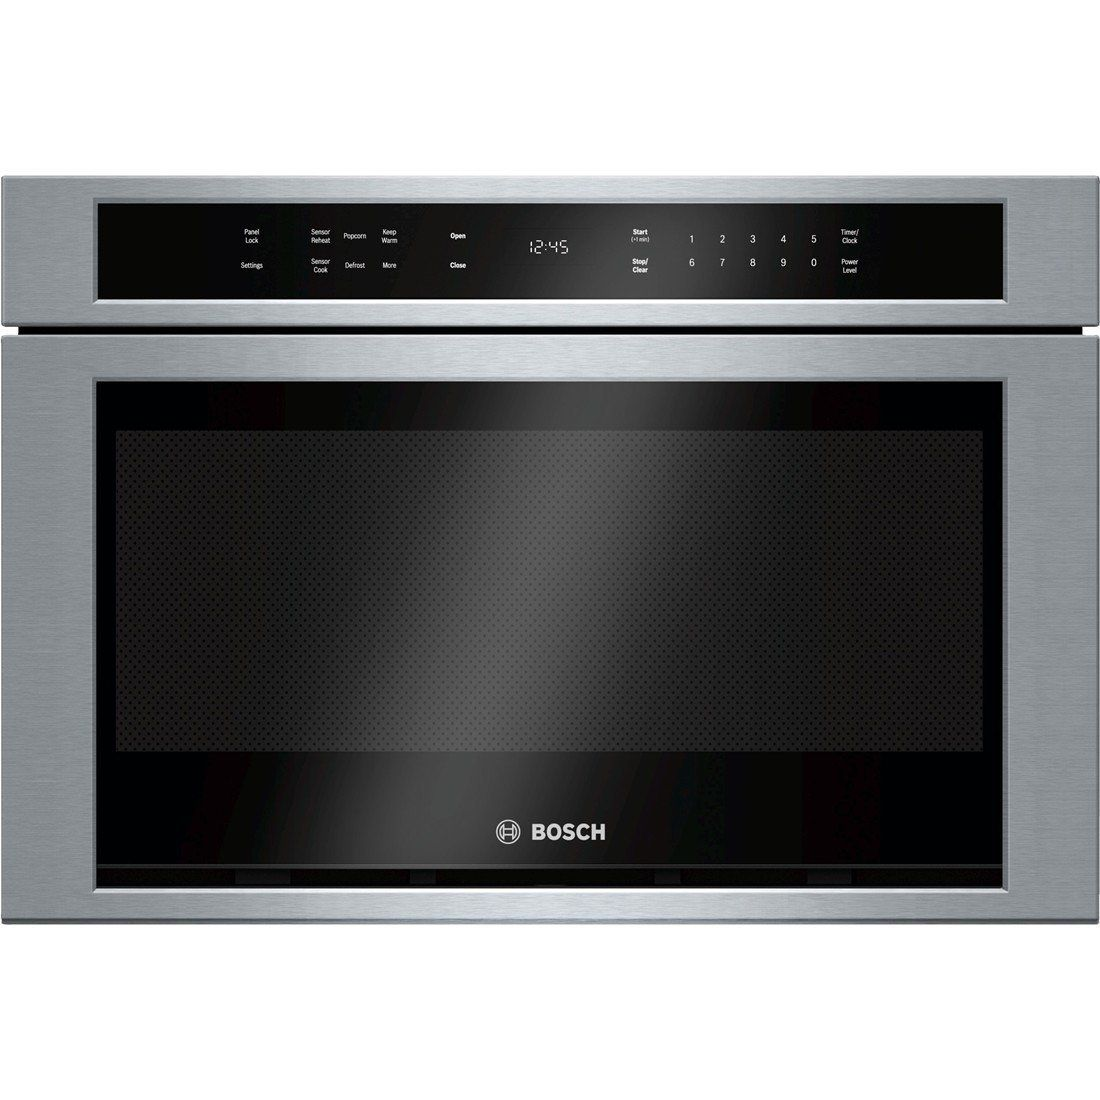 Bosch Hmd8451uc 800 24 Stainless Steel Microwave Drawer This Is An Amazon Affiliate Link Check Stainless Steel Microwave Microwave Drawer Bosch Microwave